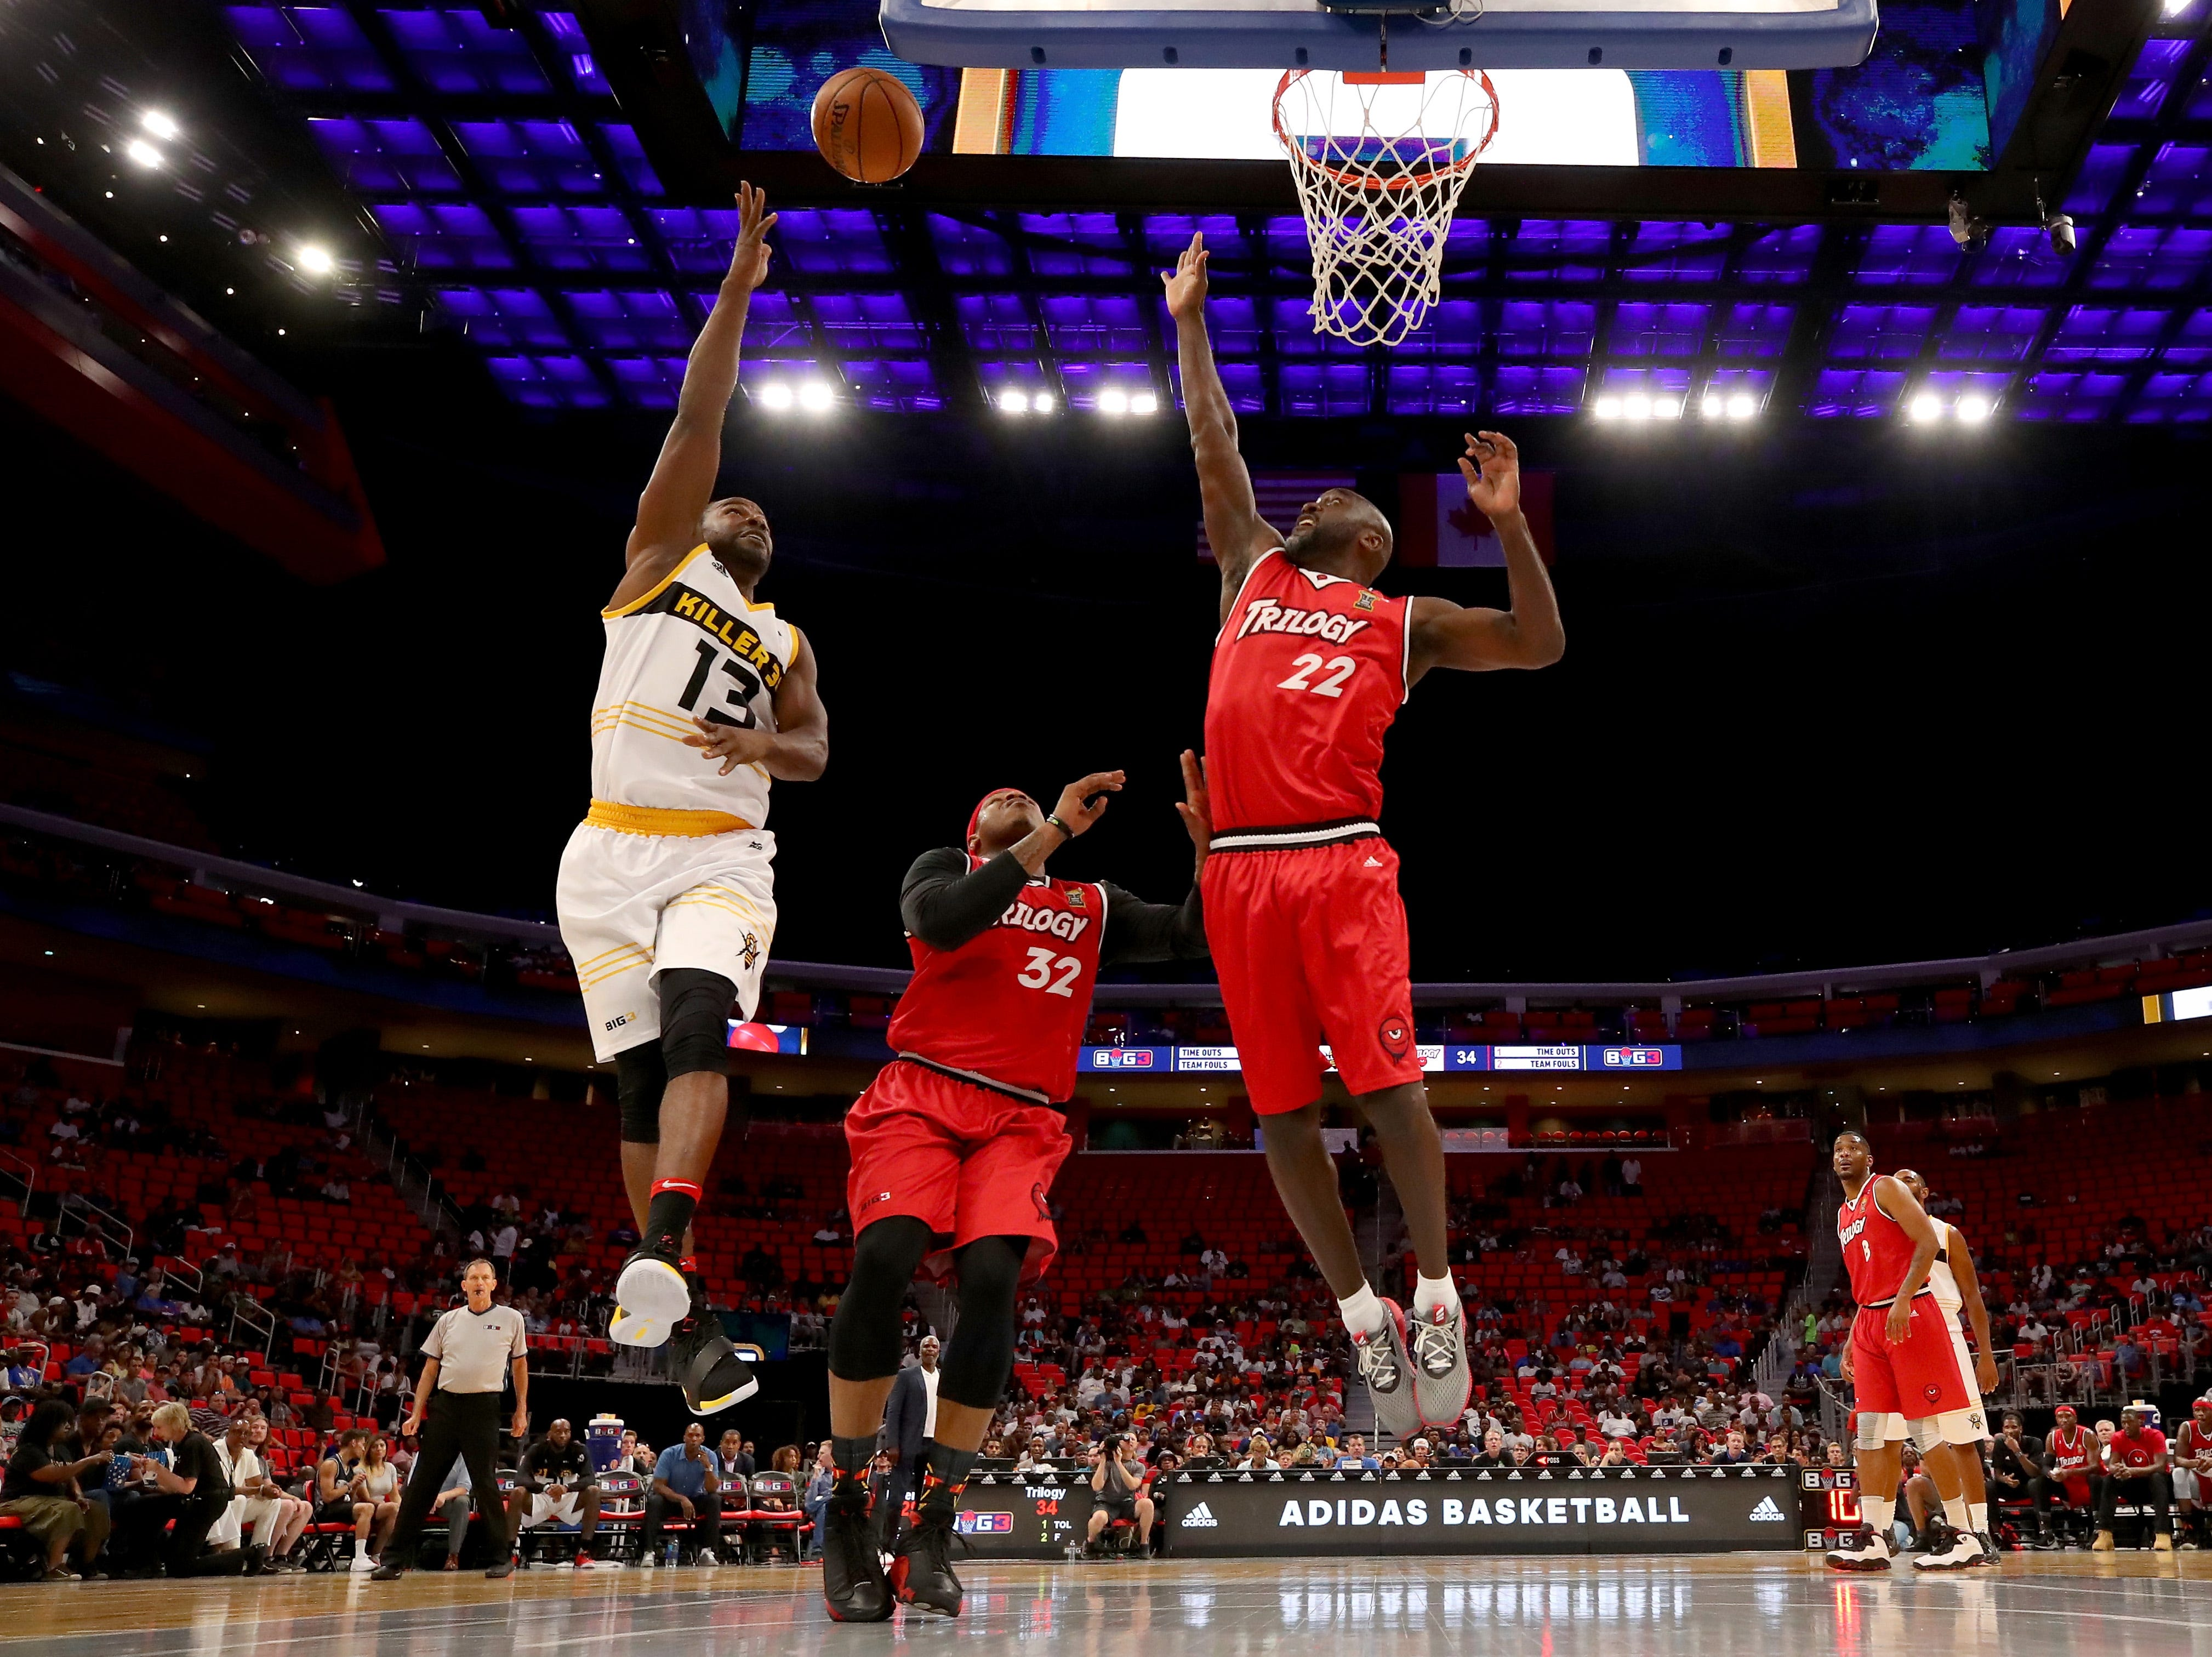 Mike James, left, of the Killer 3s attempts a shot while being guarded by Rashad McCants, center, and Dion Glover #22 of Trilogy during BIG3 - Week Four at Little Caesars Arena on July 13, 2018 in Detroit.